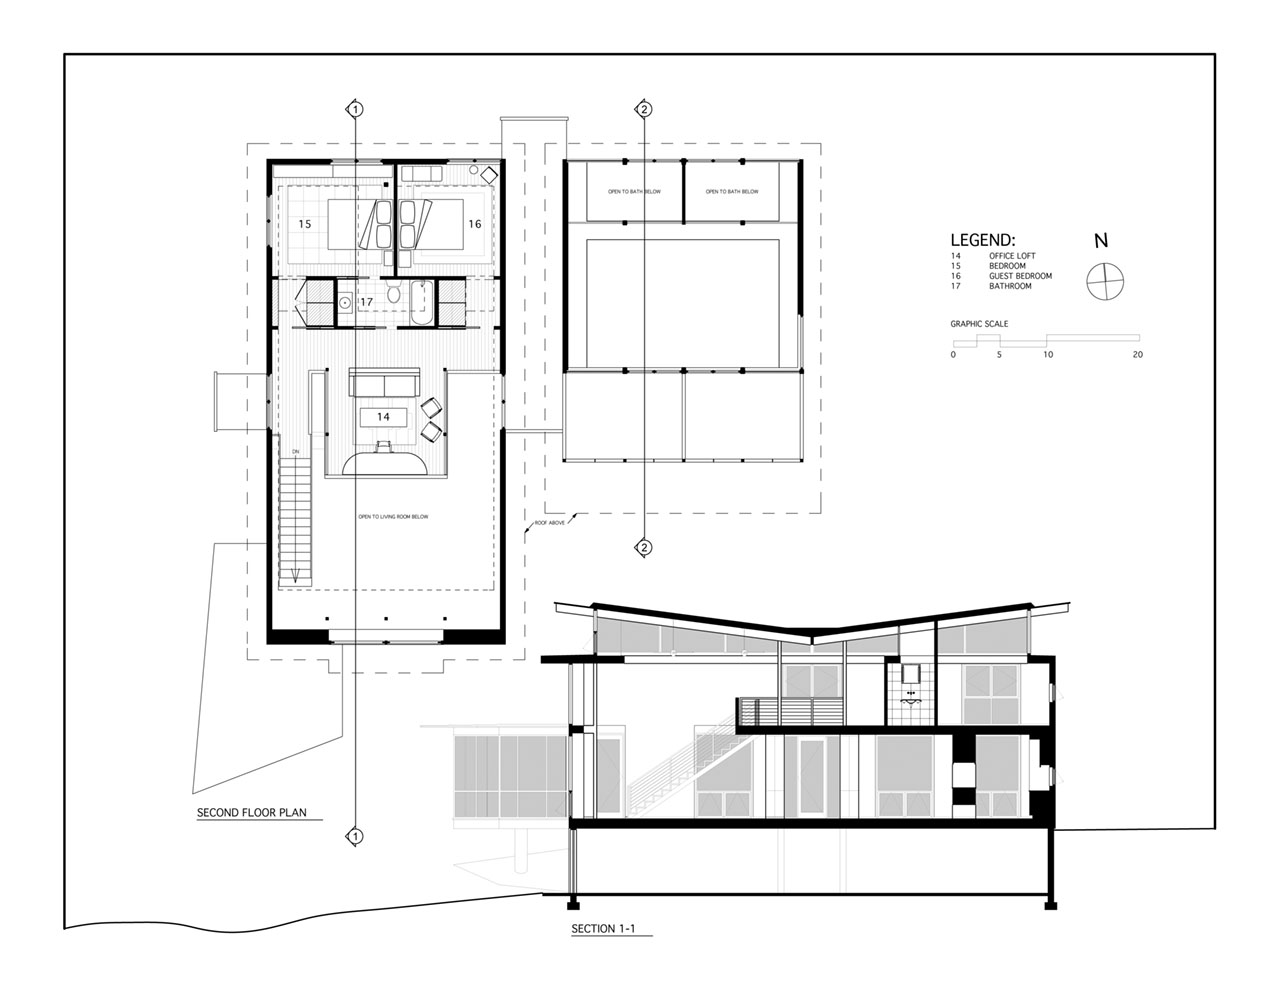 Bathroom Section Drawing